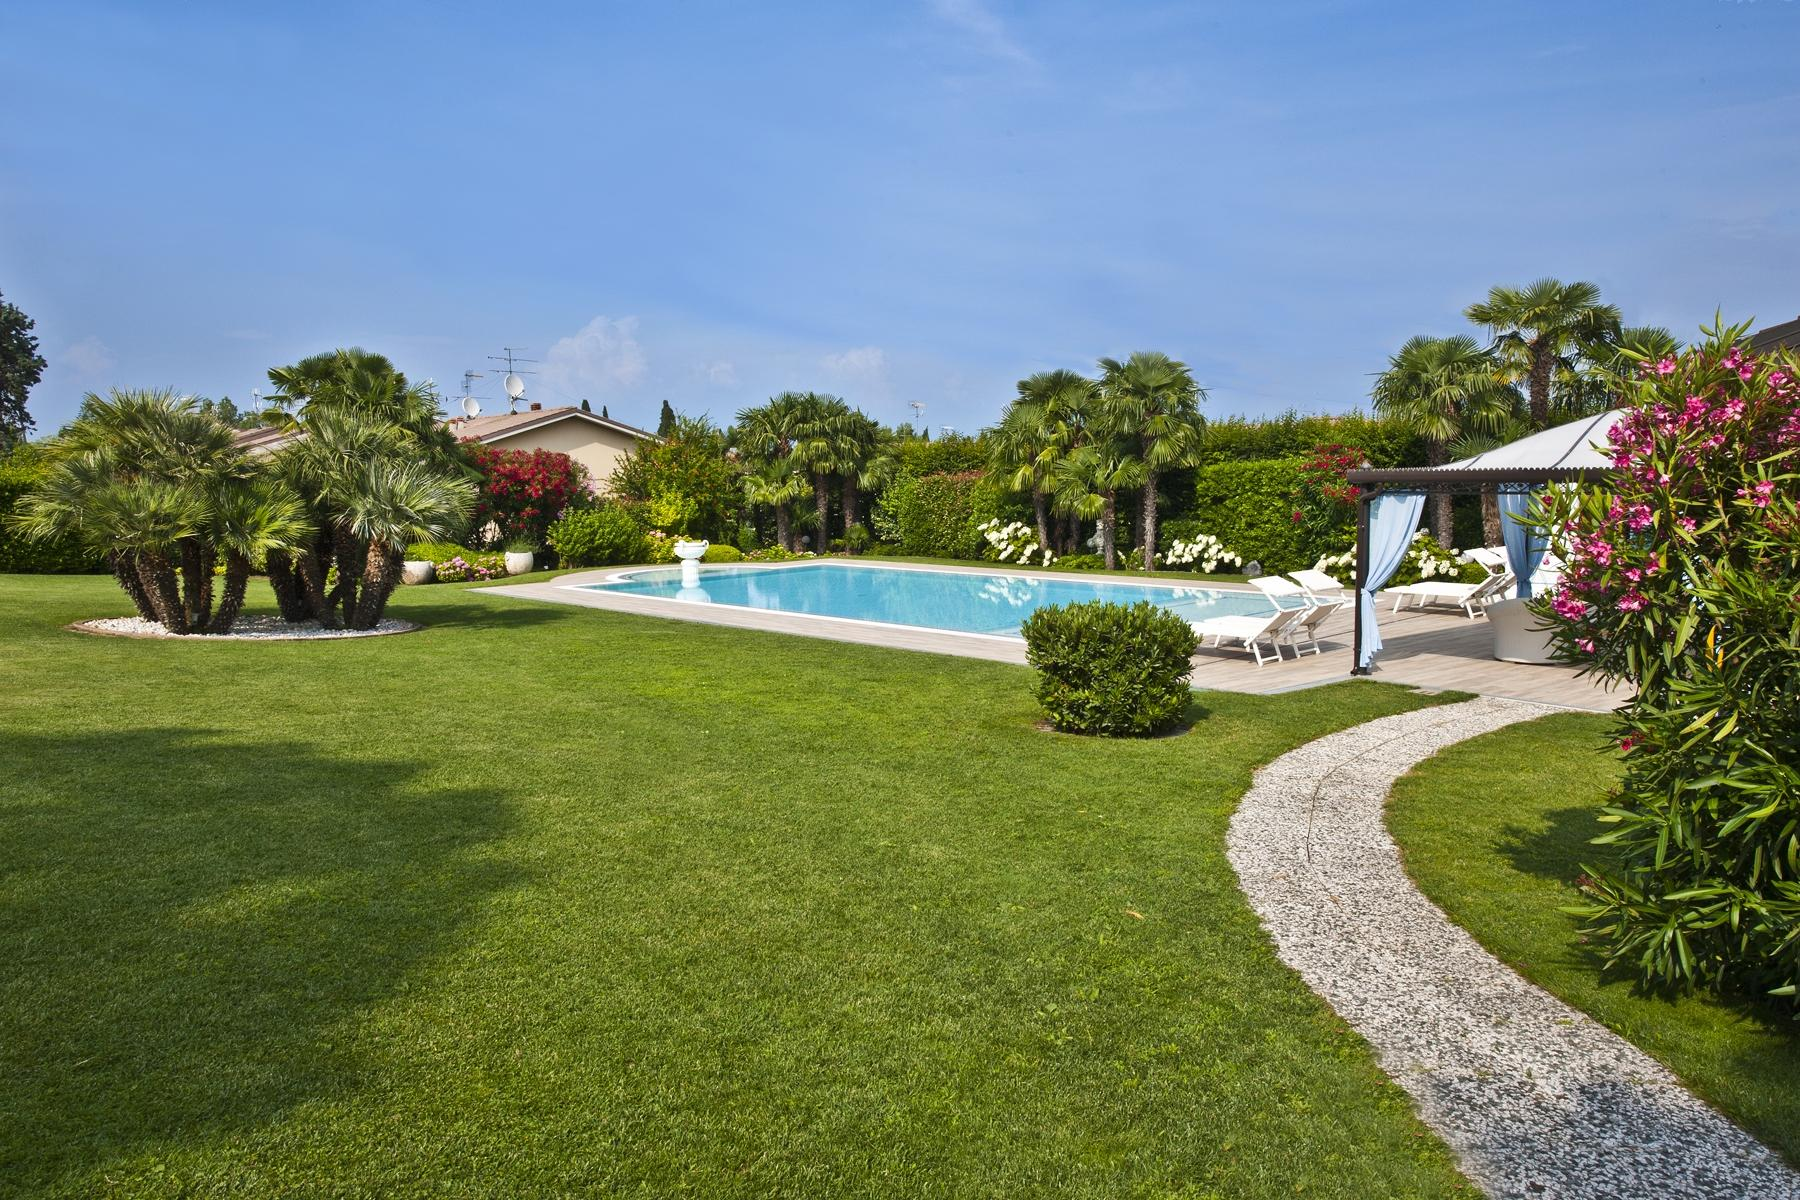 Beautiful Liberty villa with lakeview, swimming pool and dependence - 20